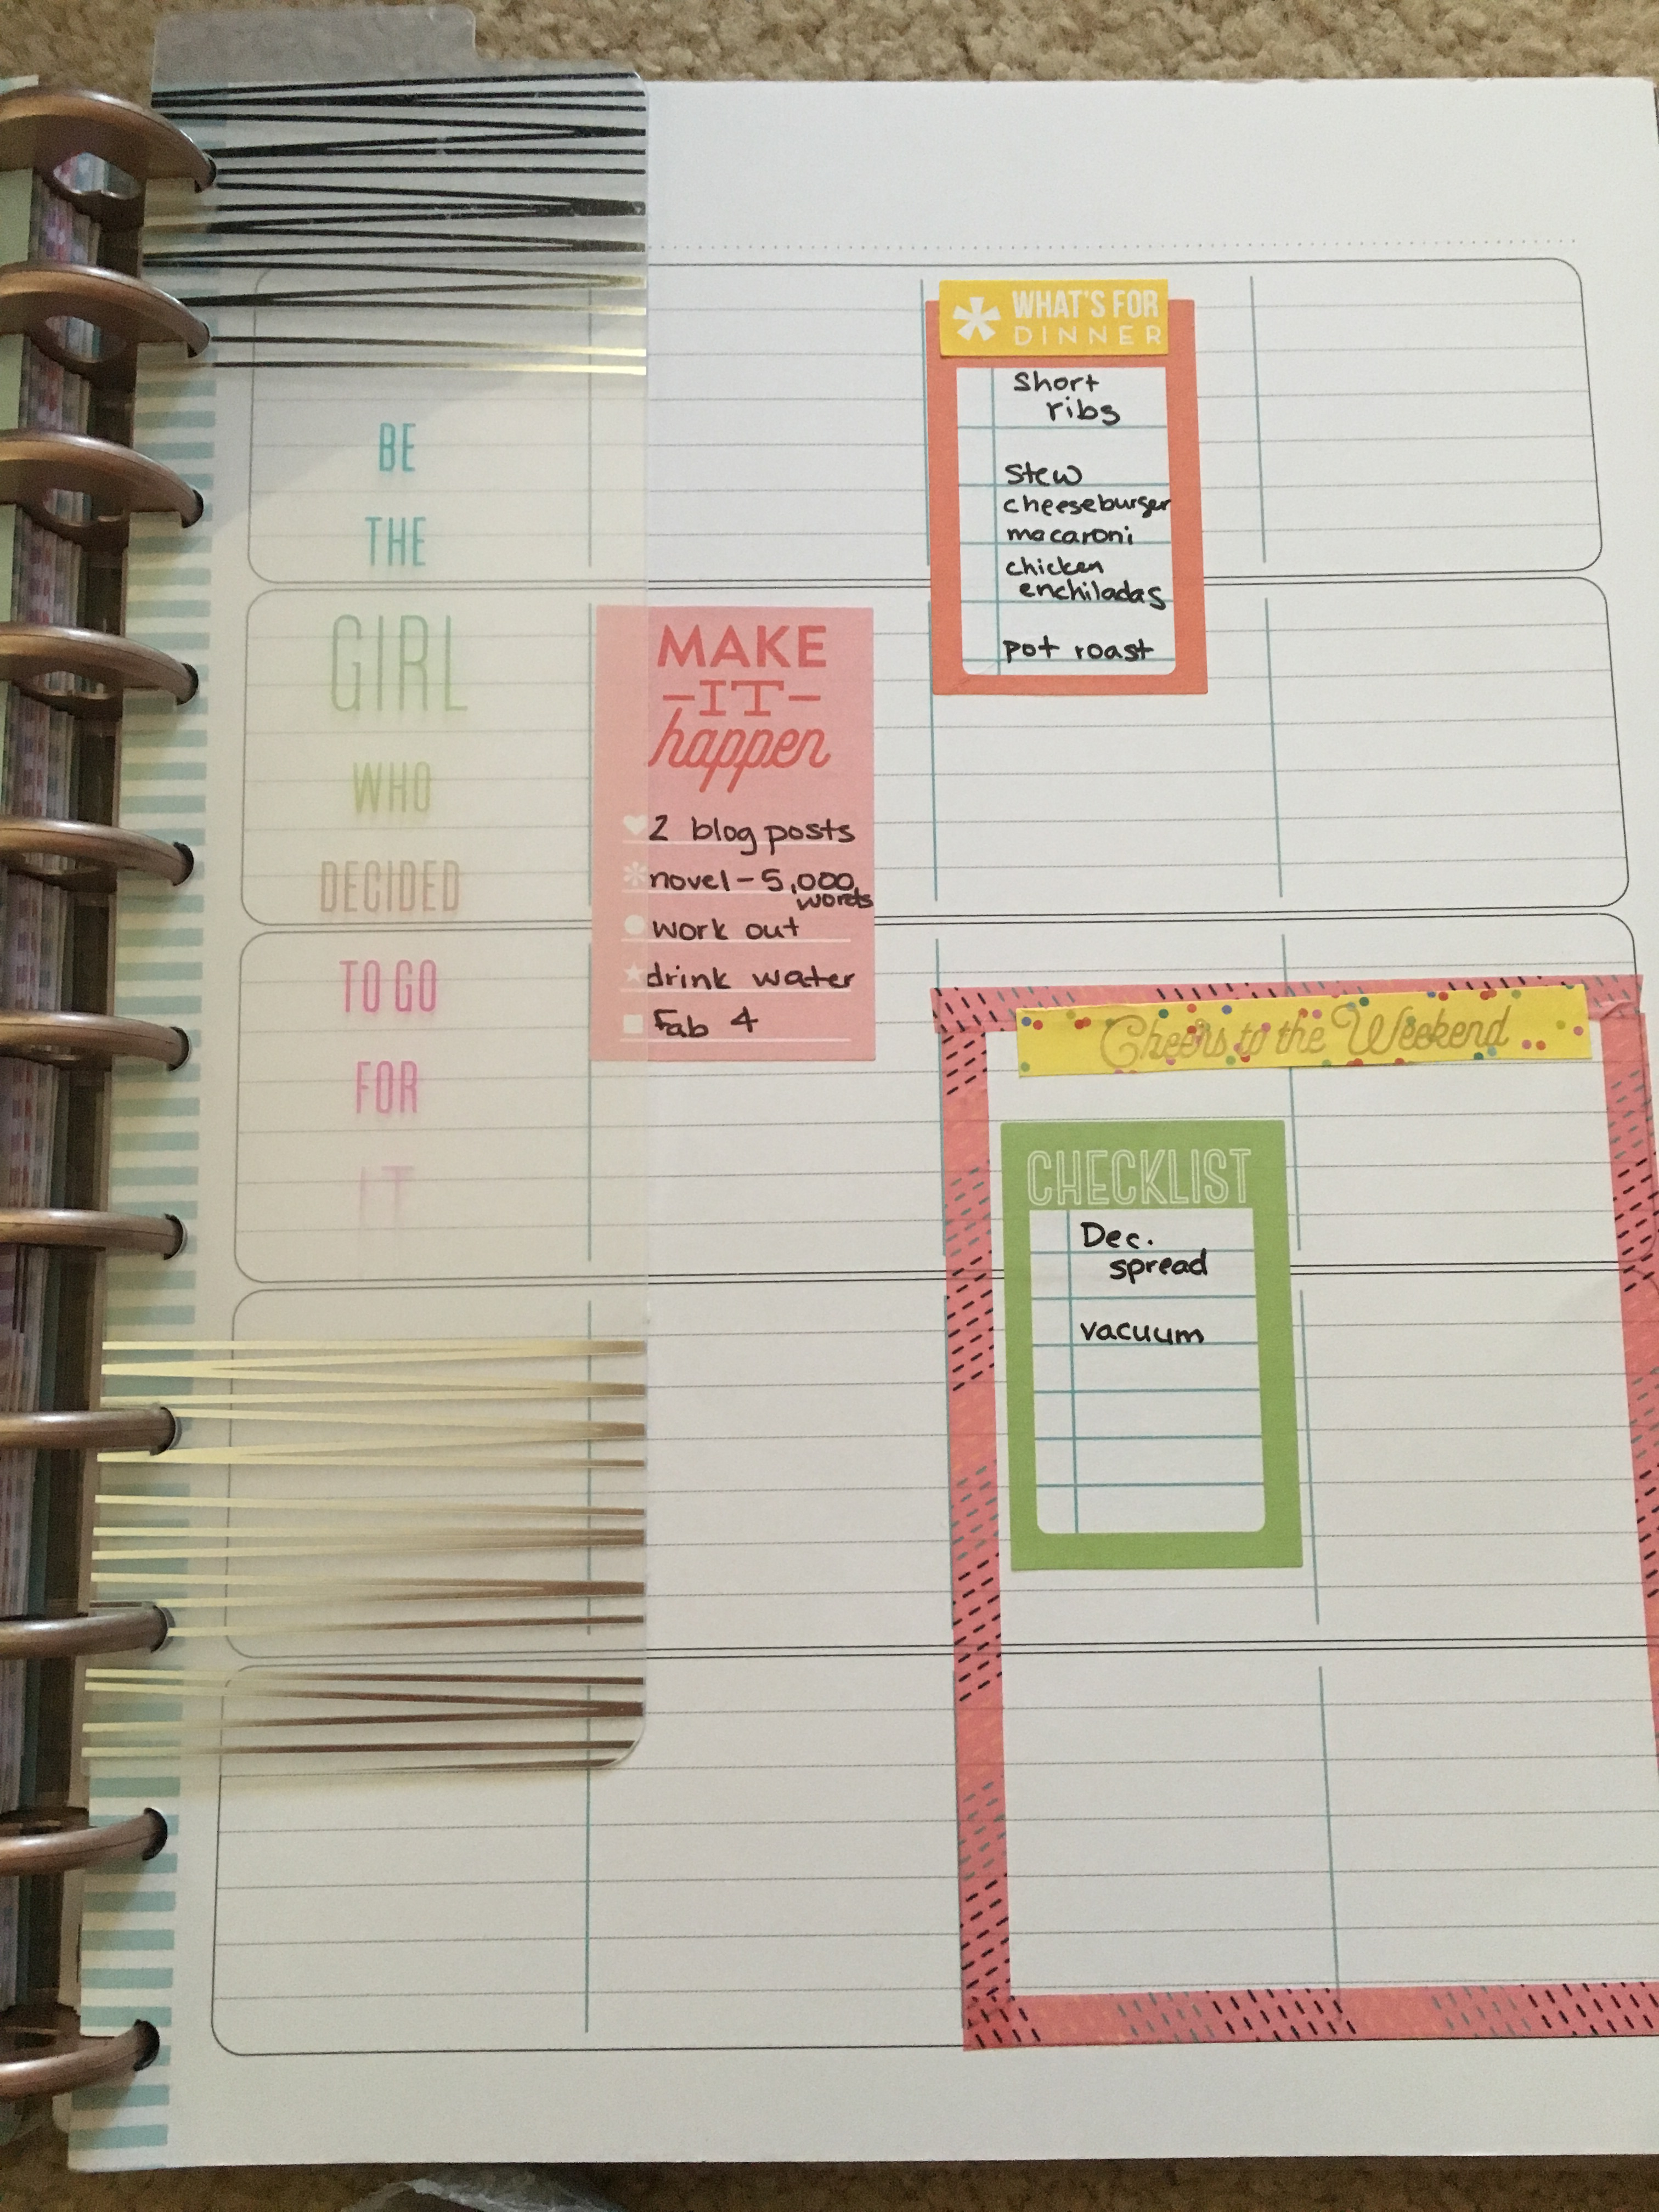 Planner spread for the week of November 26th that includes areas for meal planning and weekend plans.